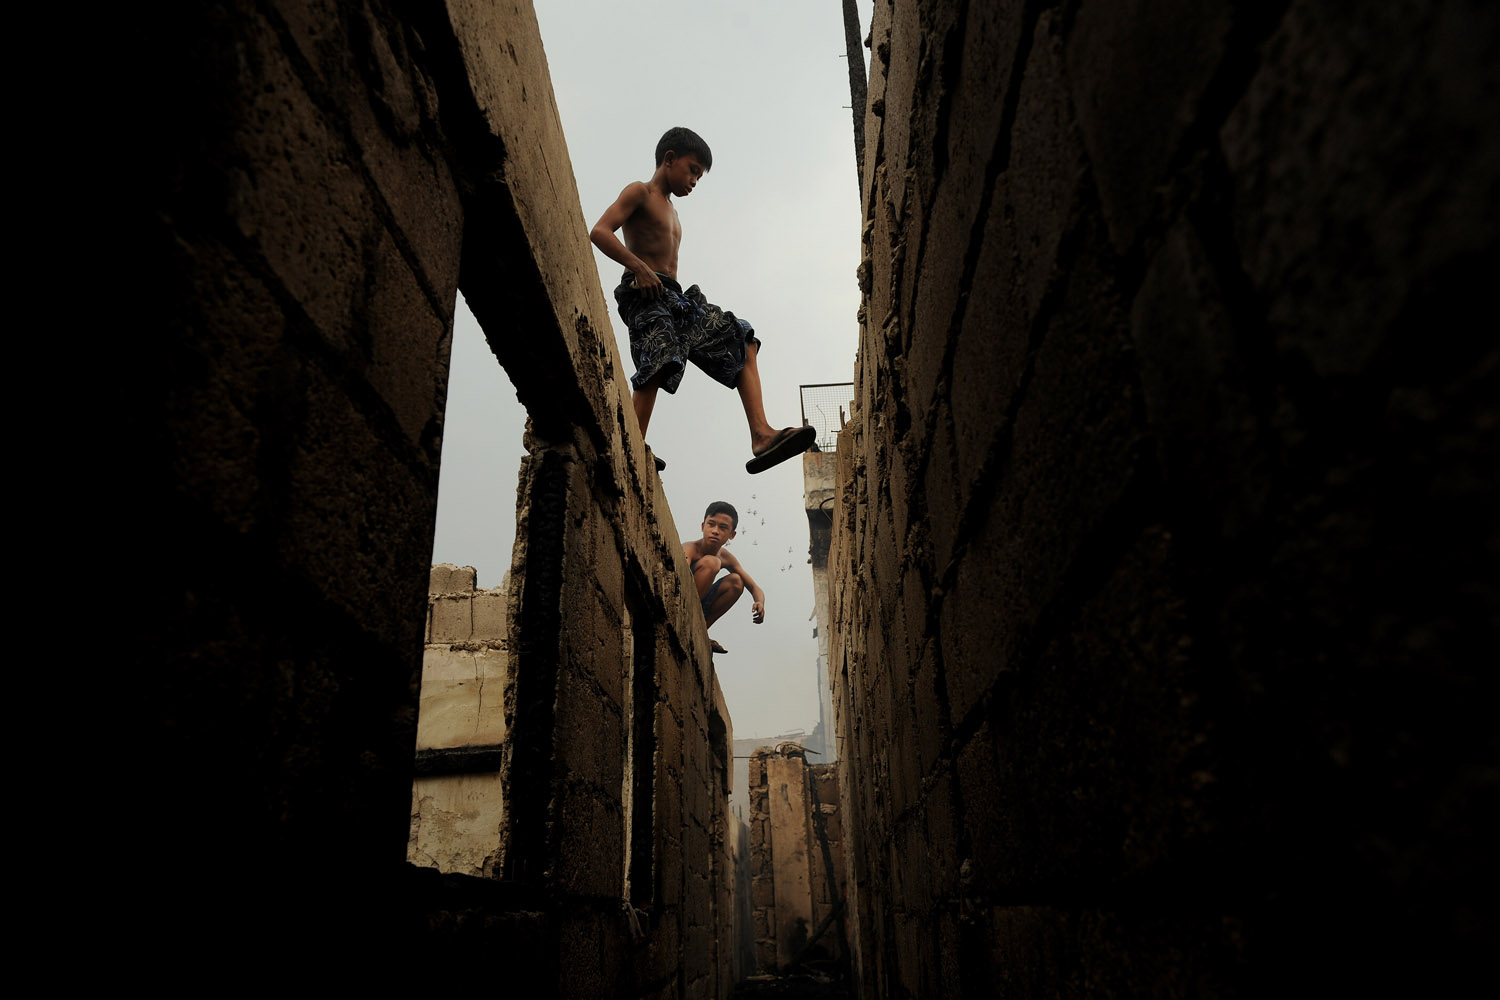 Sept. 19, 2012. Children walk above destroyed houses after a pre-dawn fire engulfed a slum area in Manila.